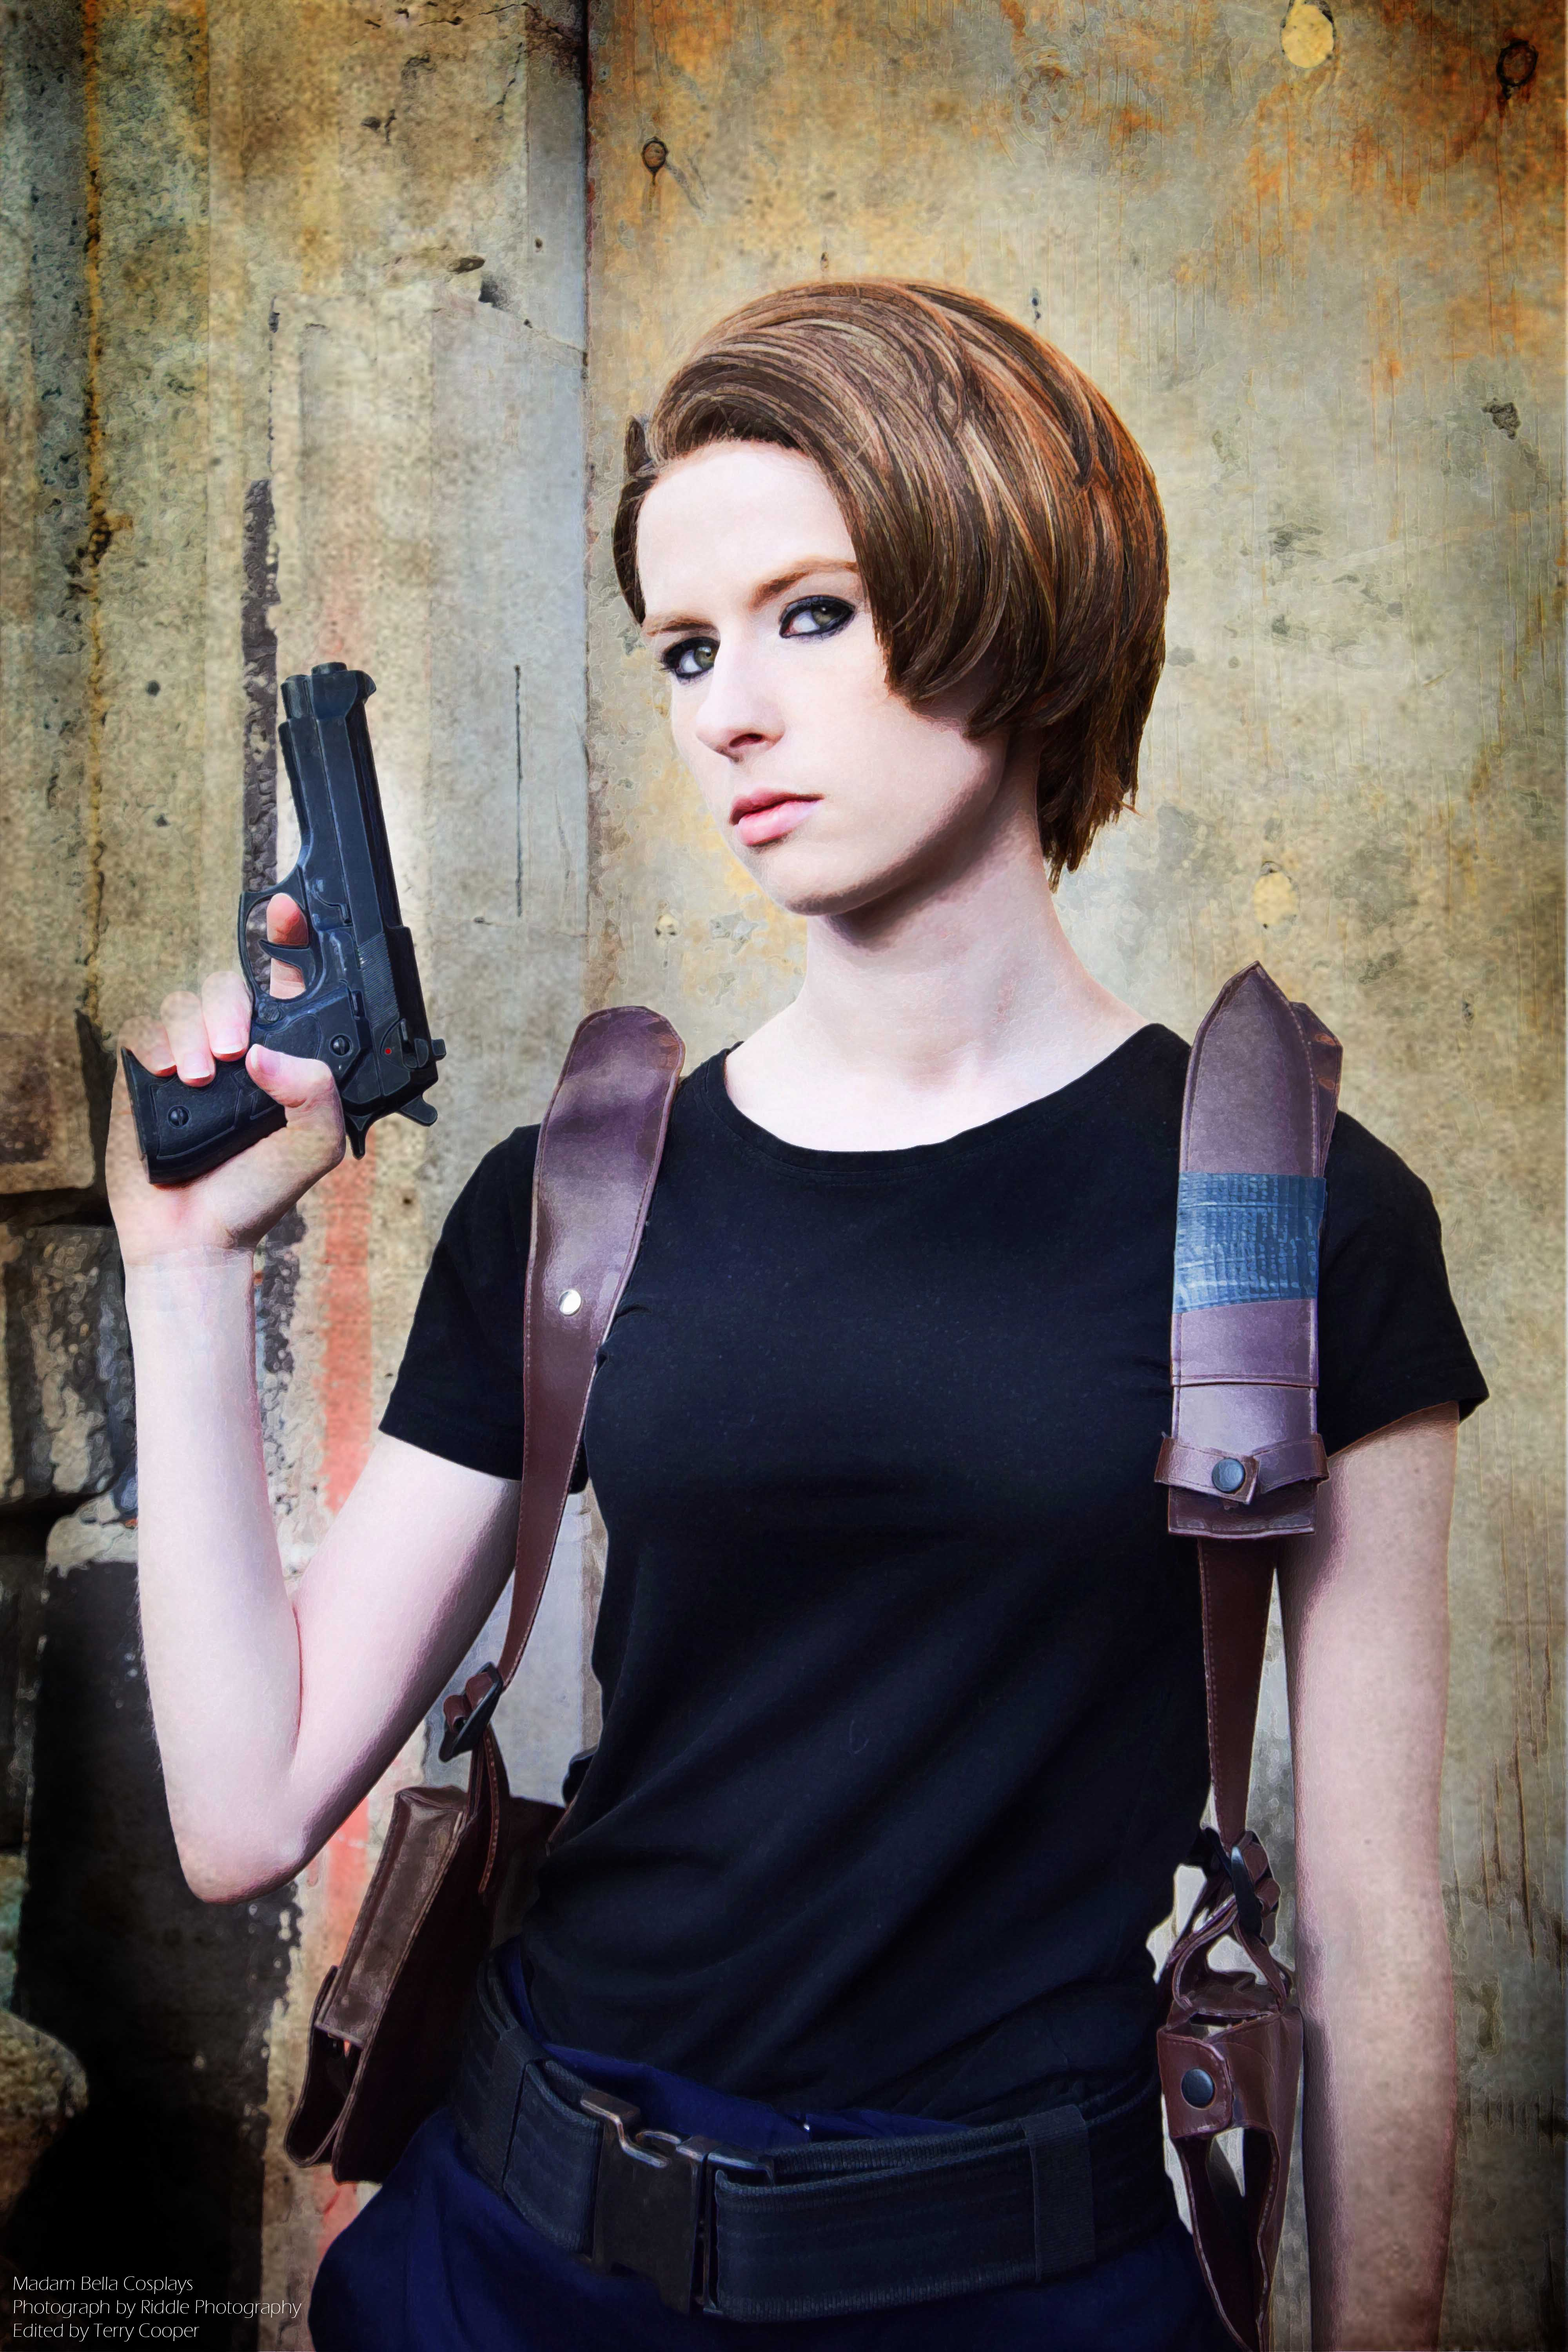 Resident Evil 4 Leon S Kennedy Custom Cosplay Gun Holster Unisex From Madam Bella Cosplays